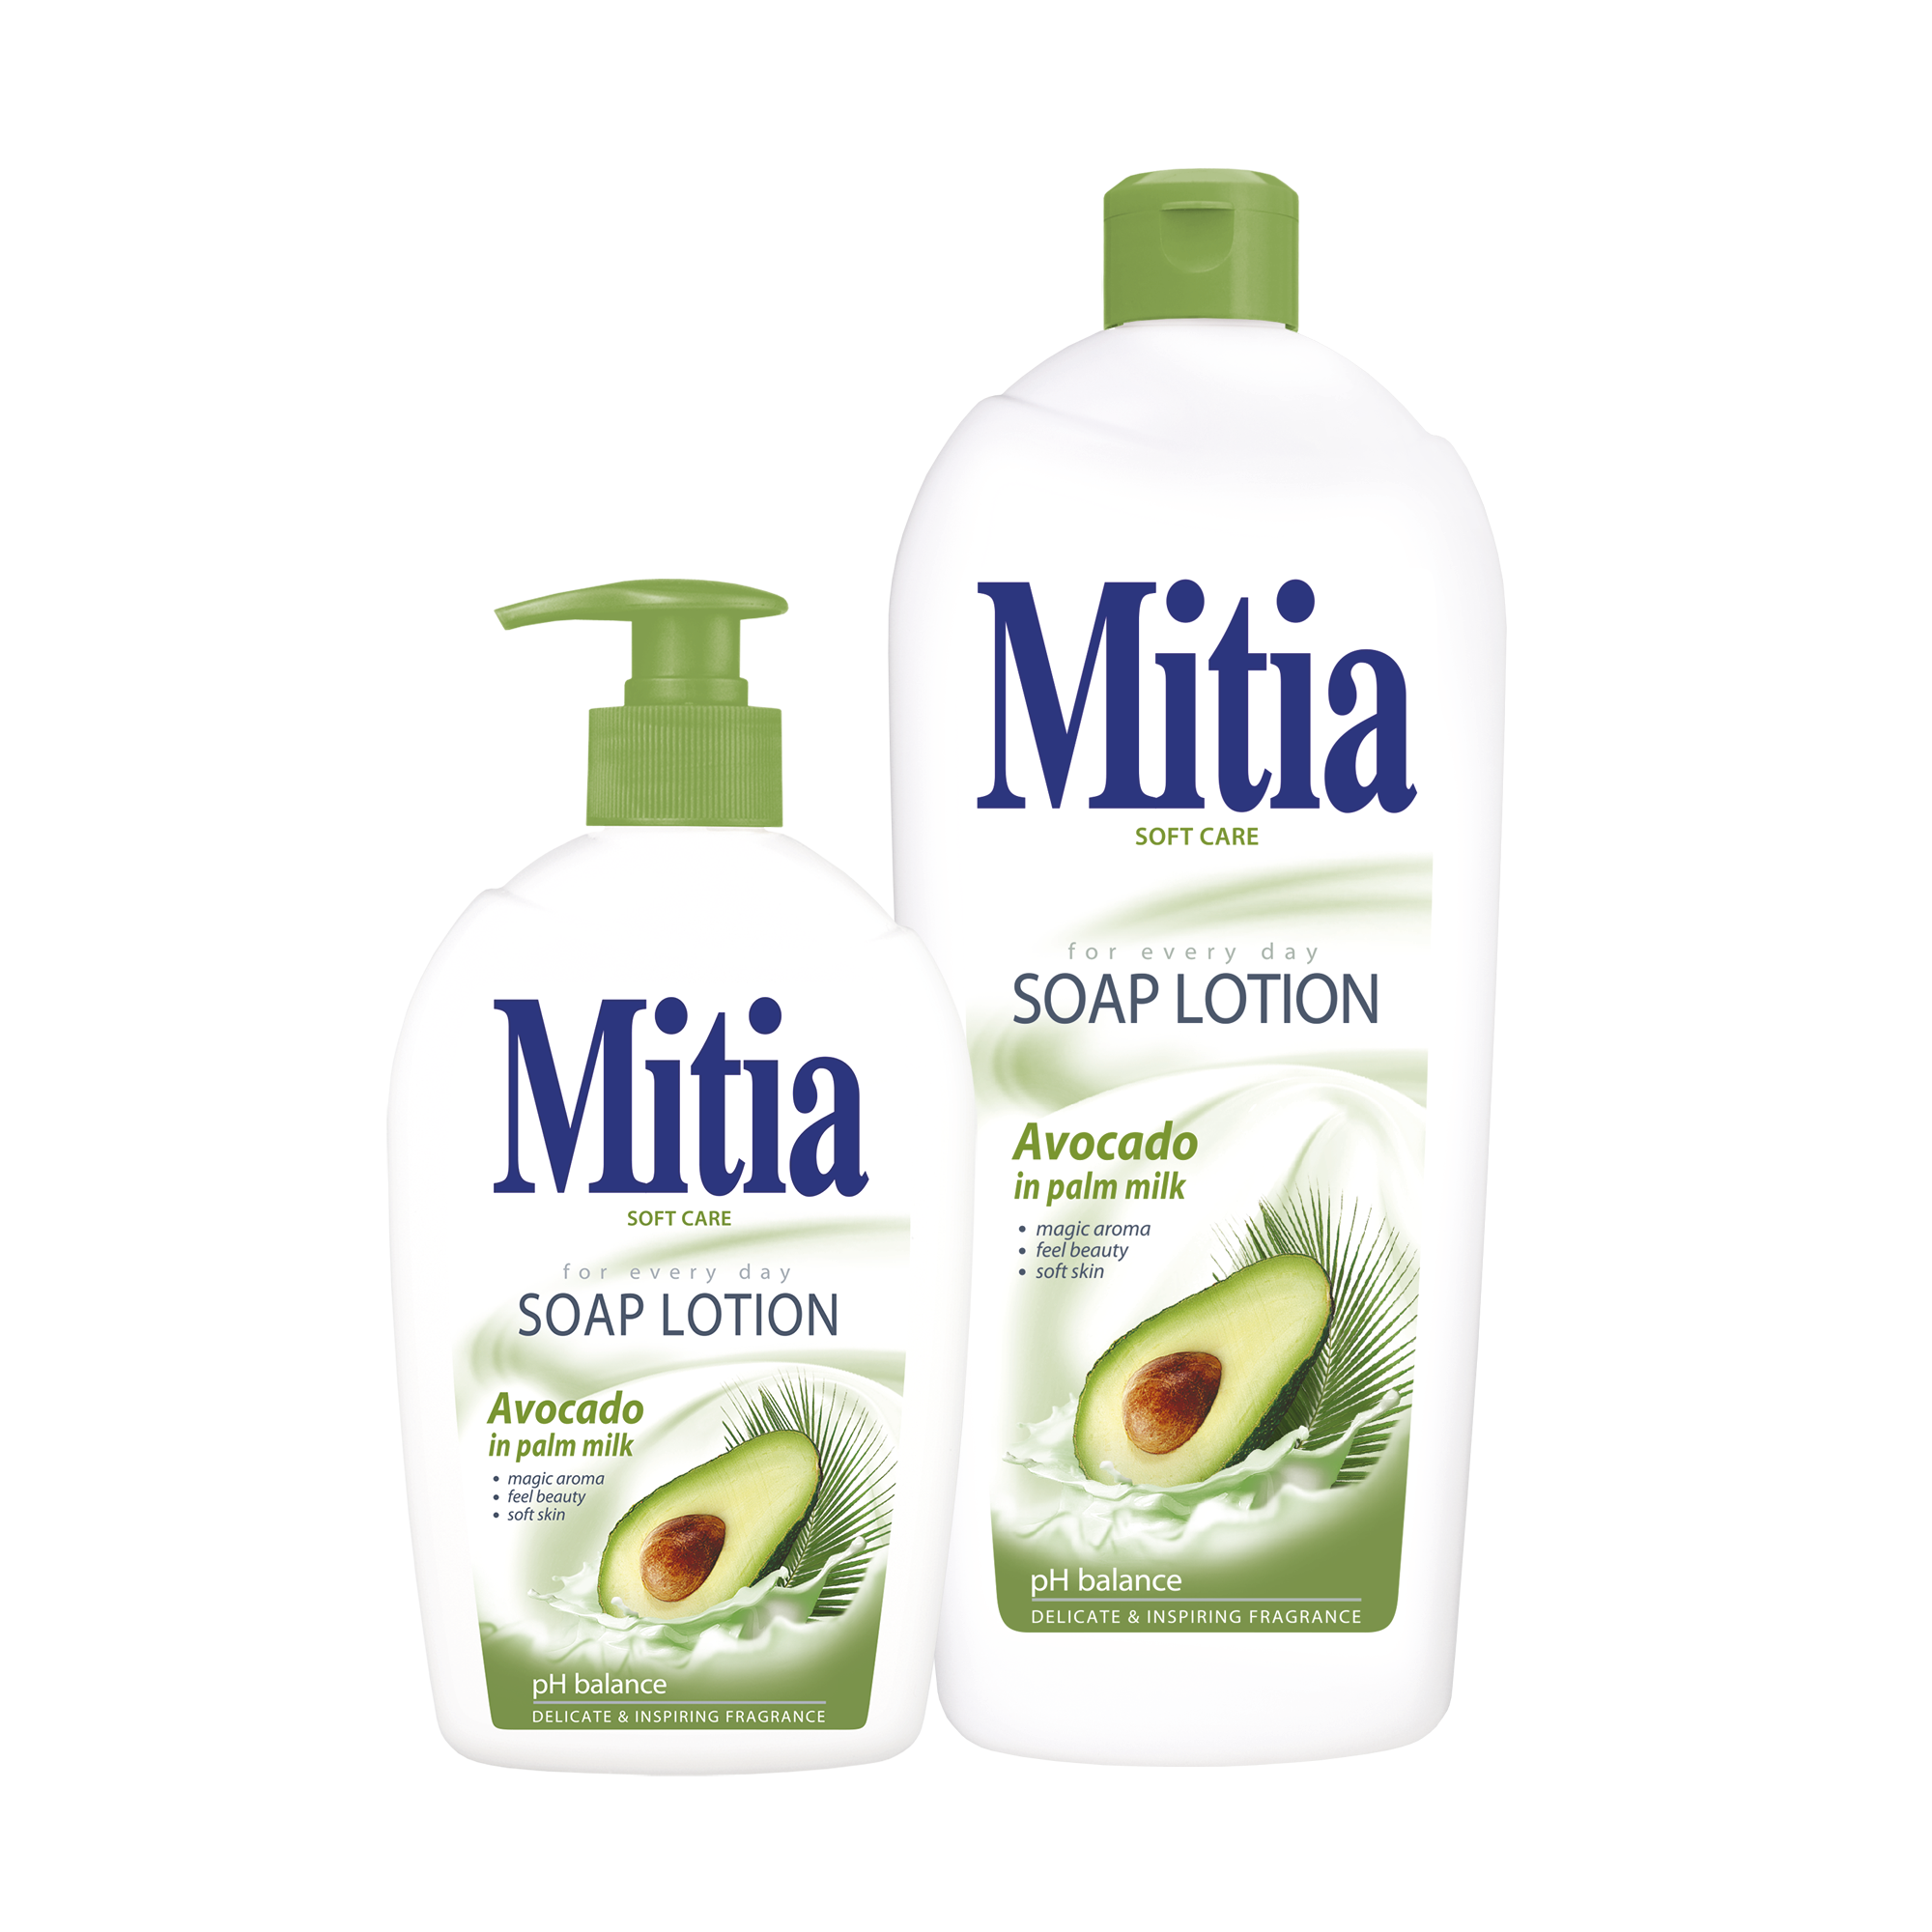 Mitia Avocado in palm milk creamy soap